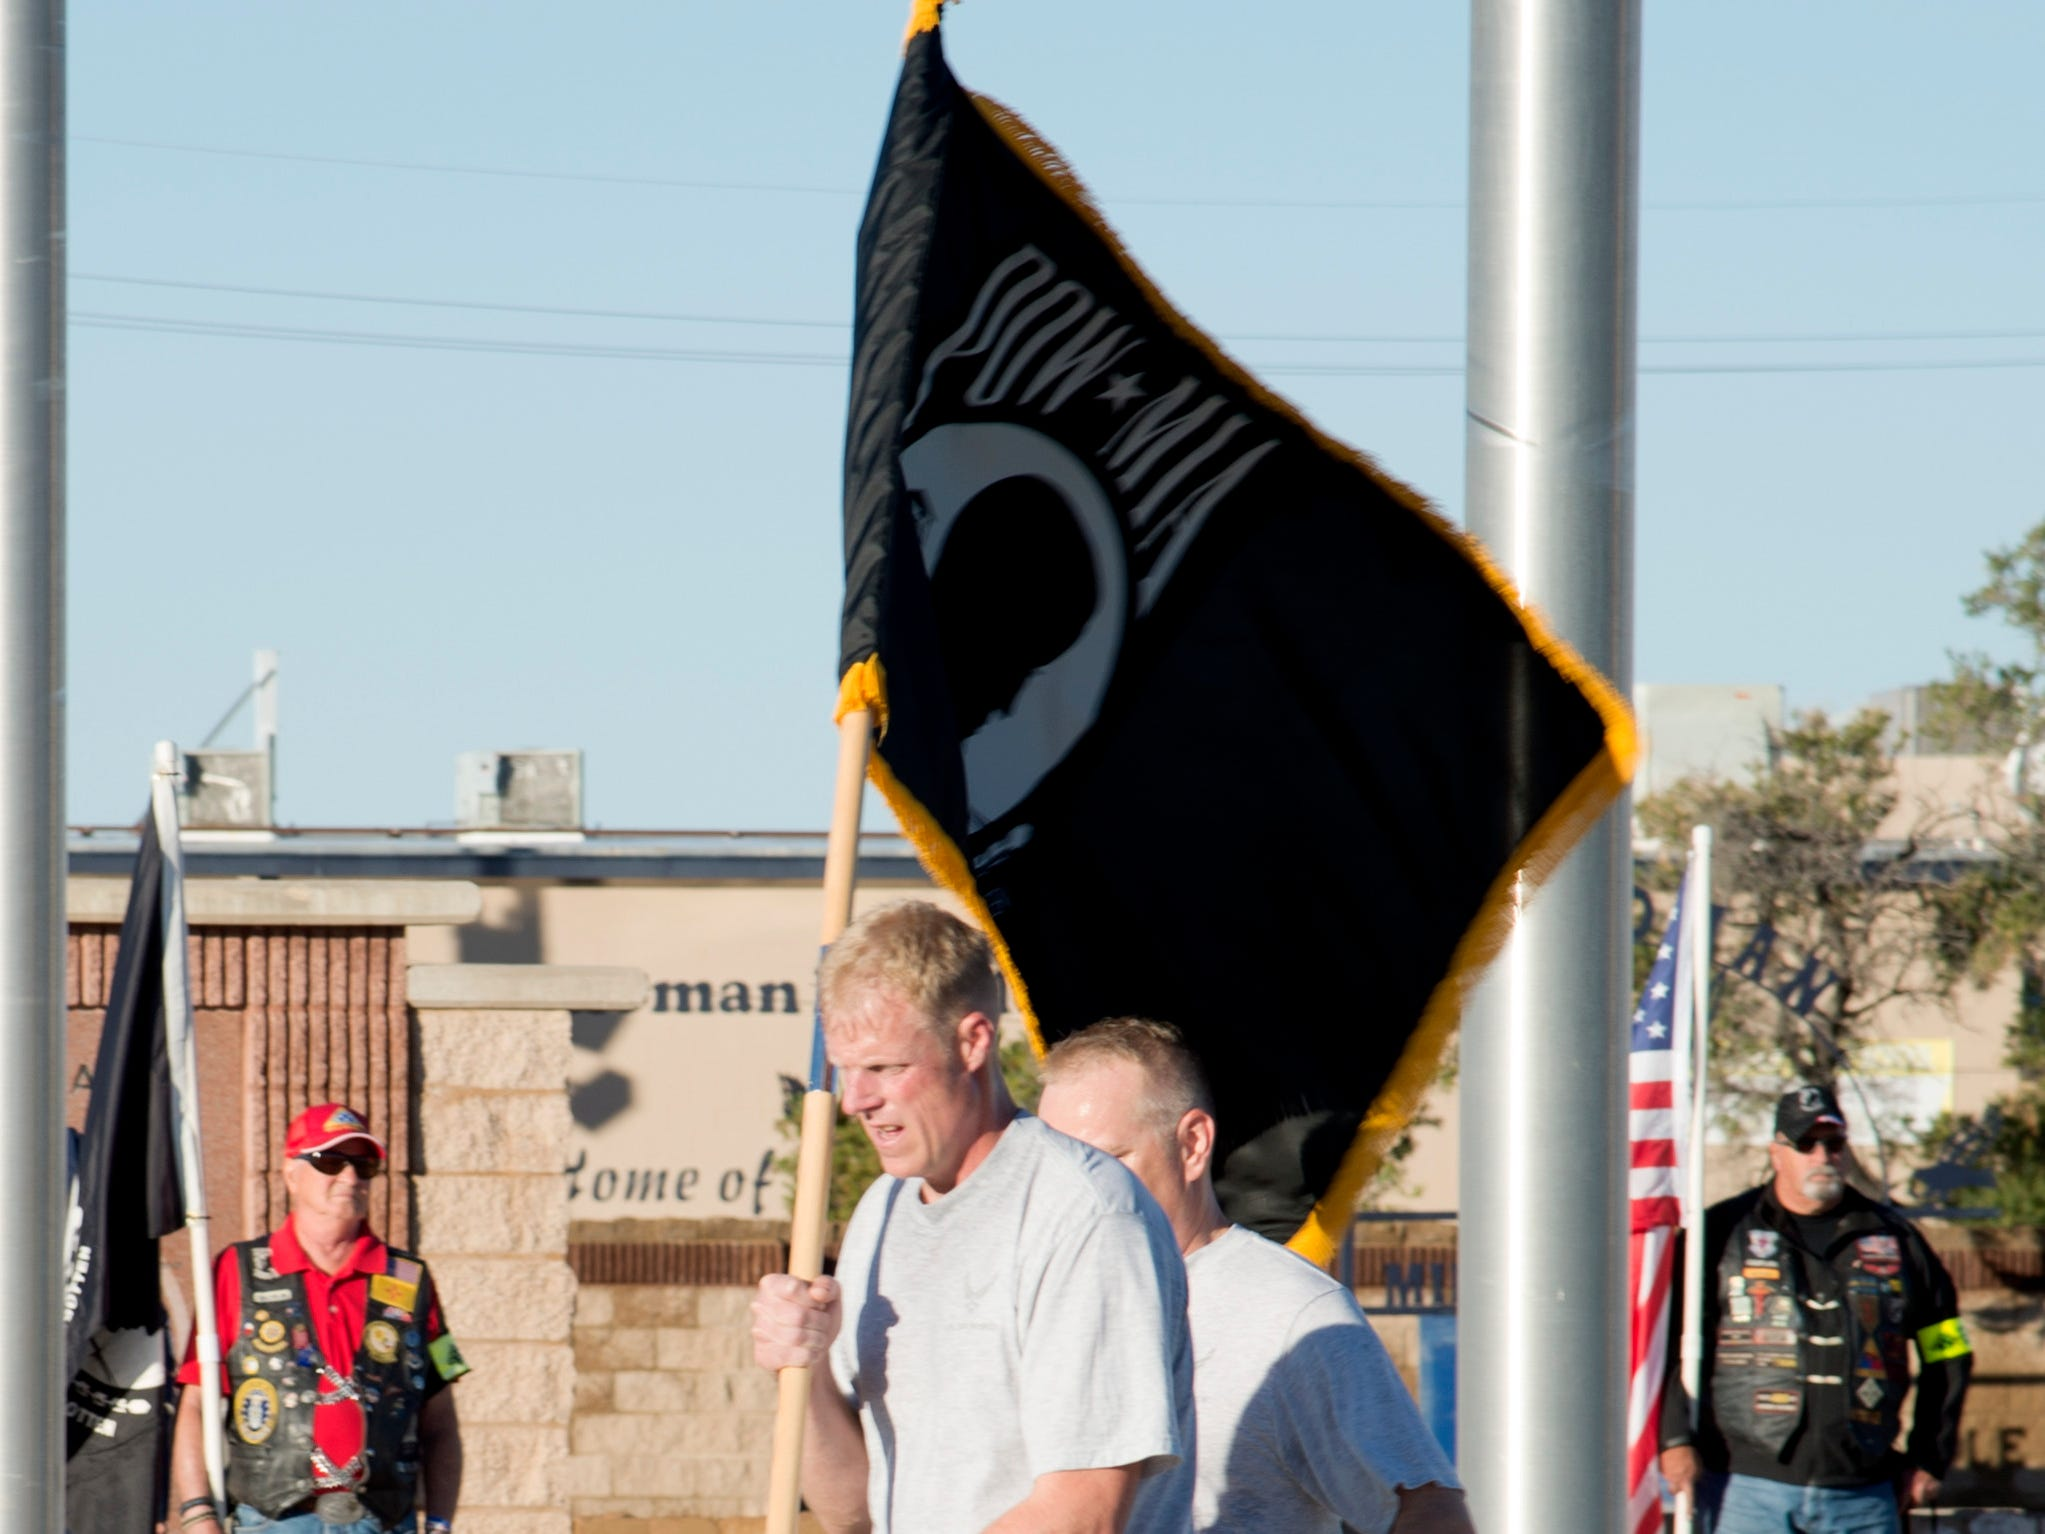 Chief Master Sgt. Timothy Wieser, 635th Material Maintenance Group Chief, runs with the POW/MIA flag during a ceremony at Heritage Park on Holloman Air Force Base, N.M., Sept. 21. The ceremony, in rememberance of prisoners-of-war and those still missing-in-action, was part of Holloman's POW/MIA commemoration.